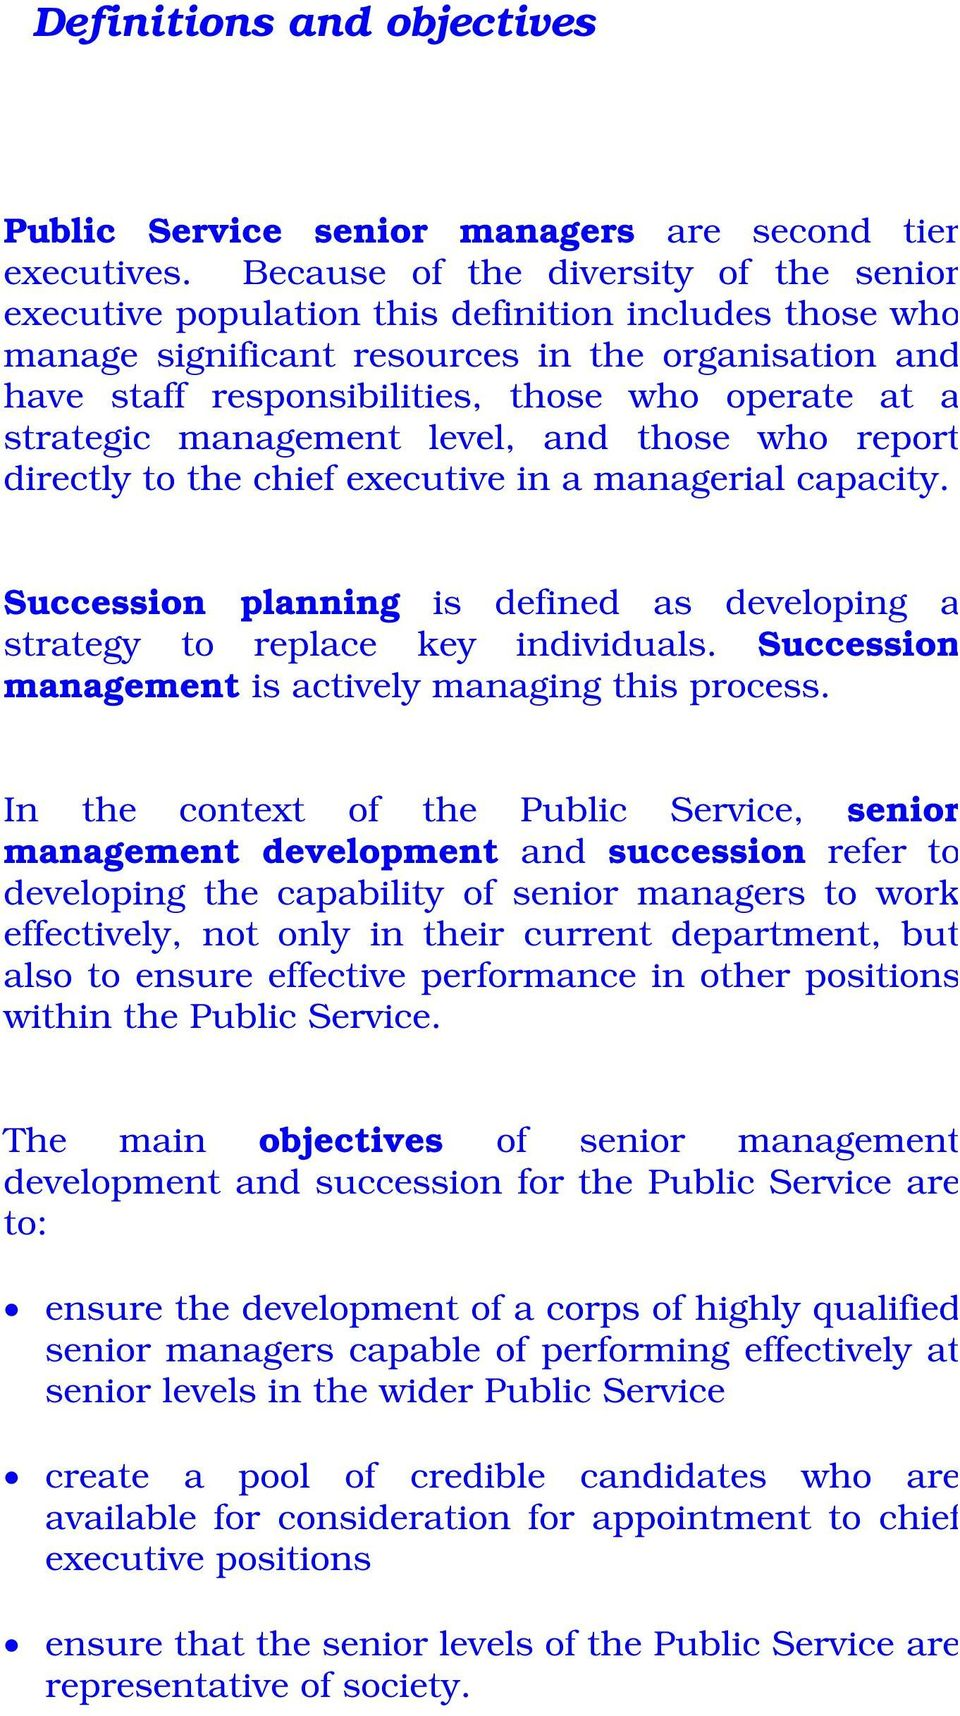 strategic management level, and those who report directly to the chief executive in a managerial capacity. Succession planning is defined as developing a strategy to replace key individuals.